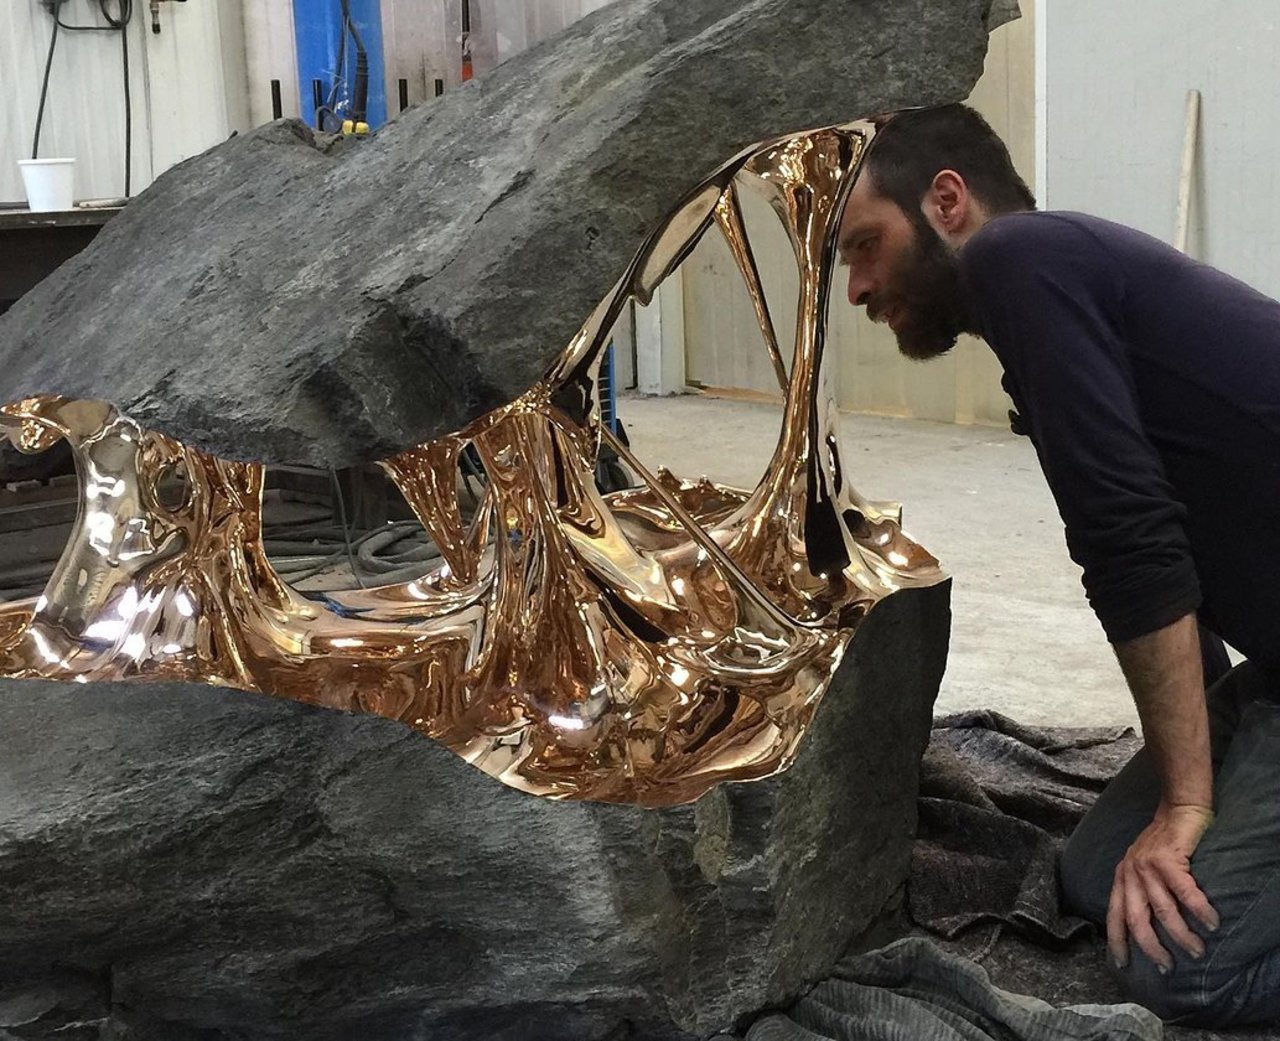 Check out Romain Langlois' bisected boulders with stretched bronze interiors. https://t.co/ruj2Tk8BOr